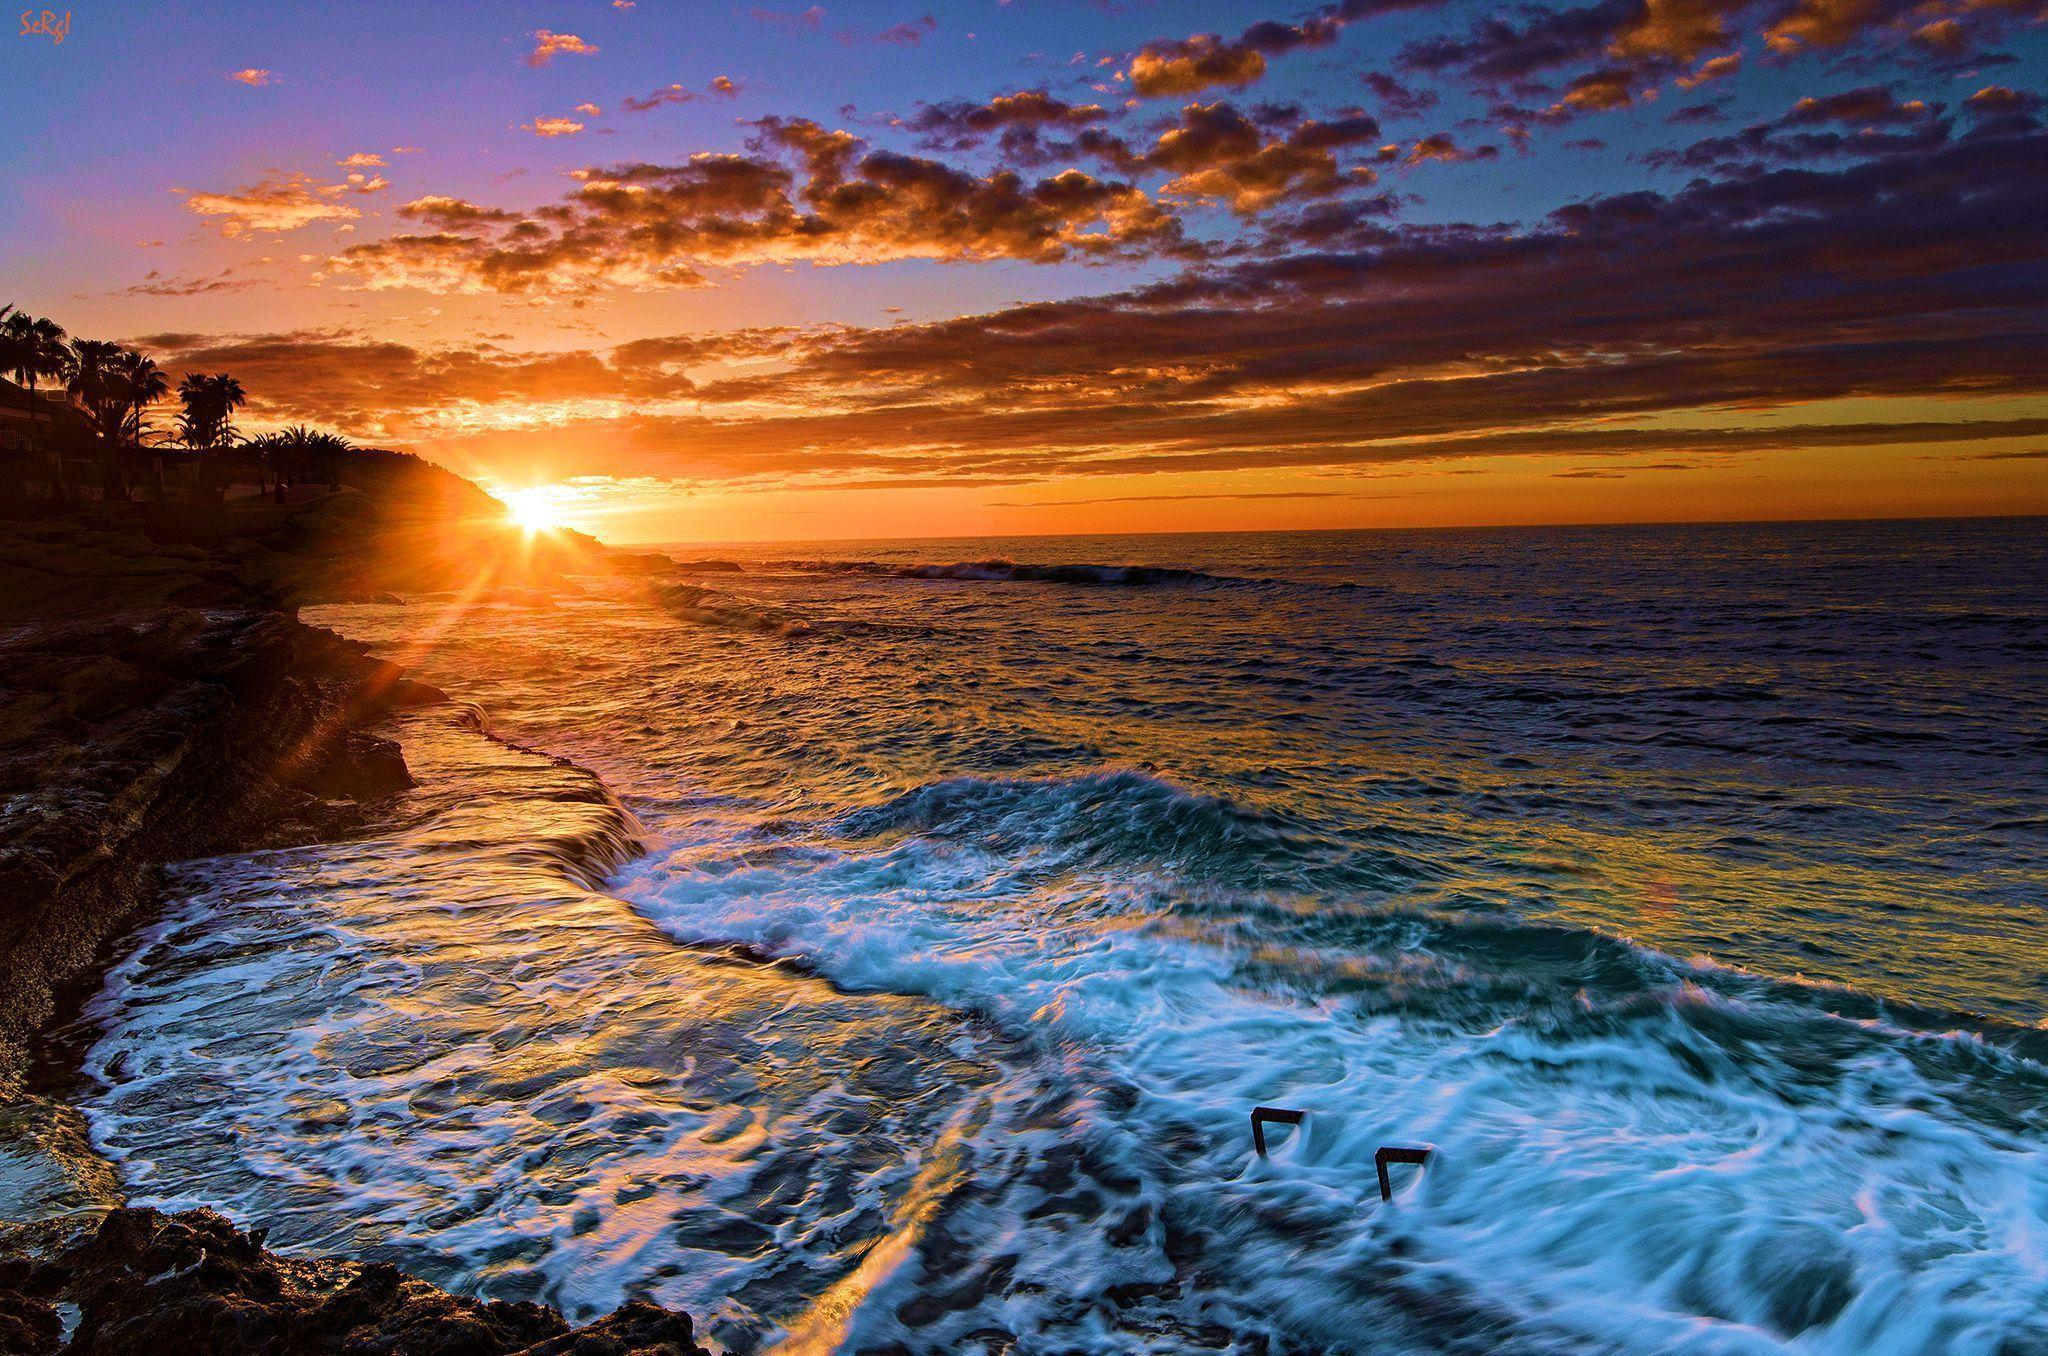 Beach pictures for desktop backgrounds wallpaper cave - Hp screensaver ...